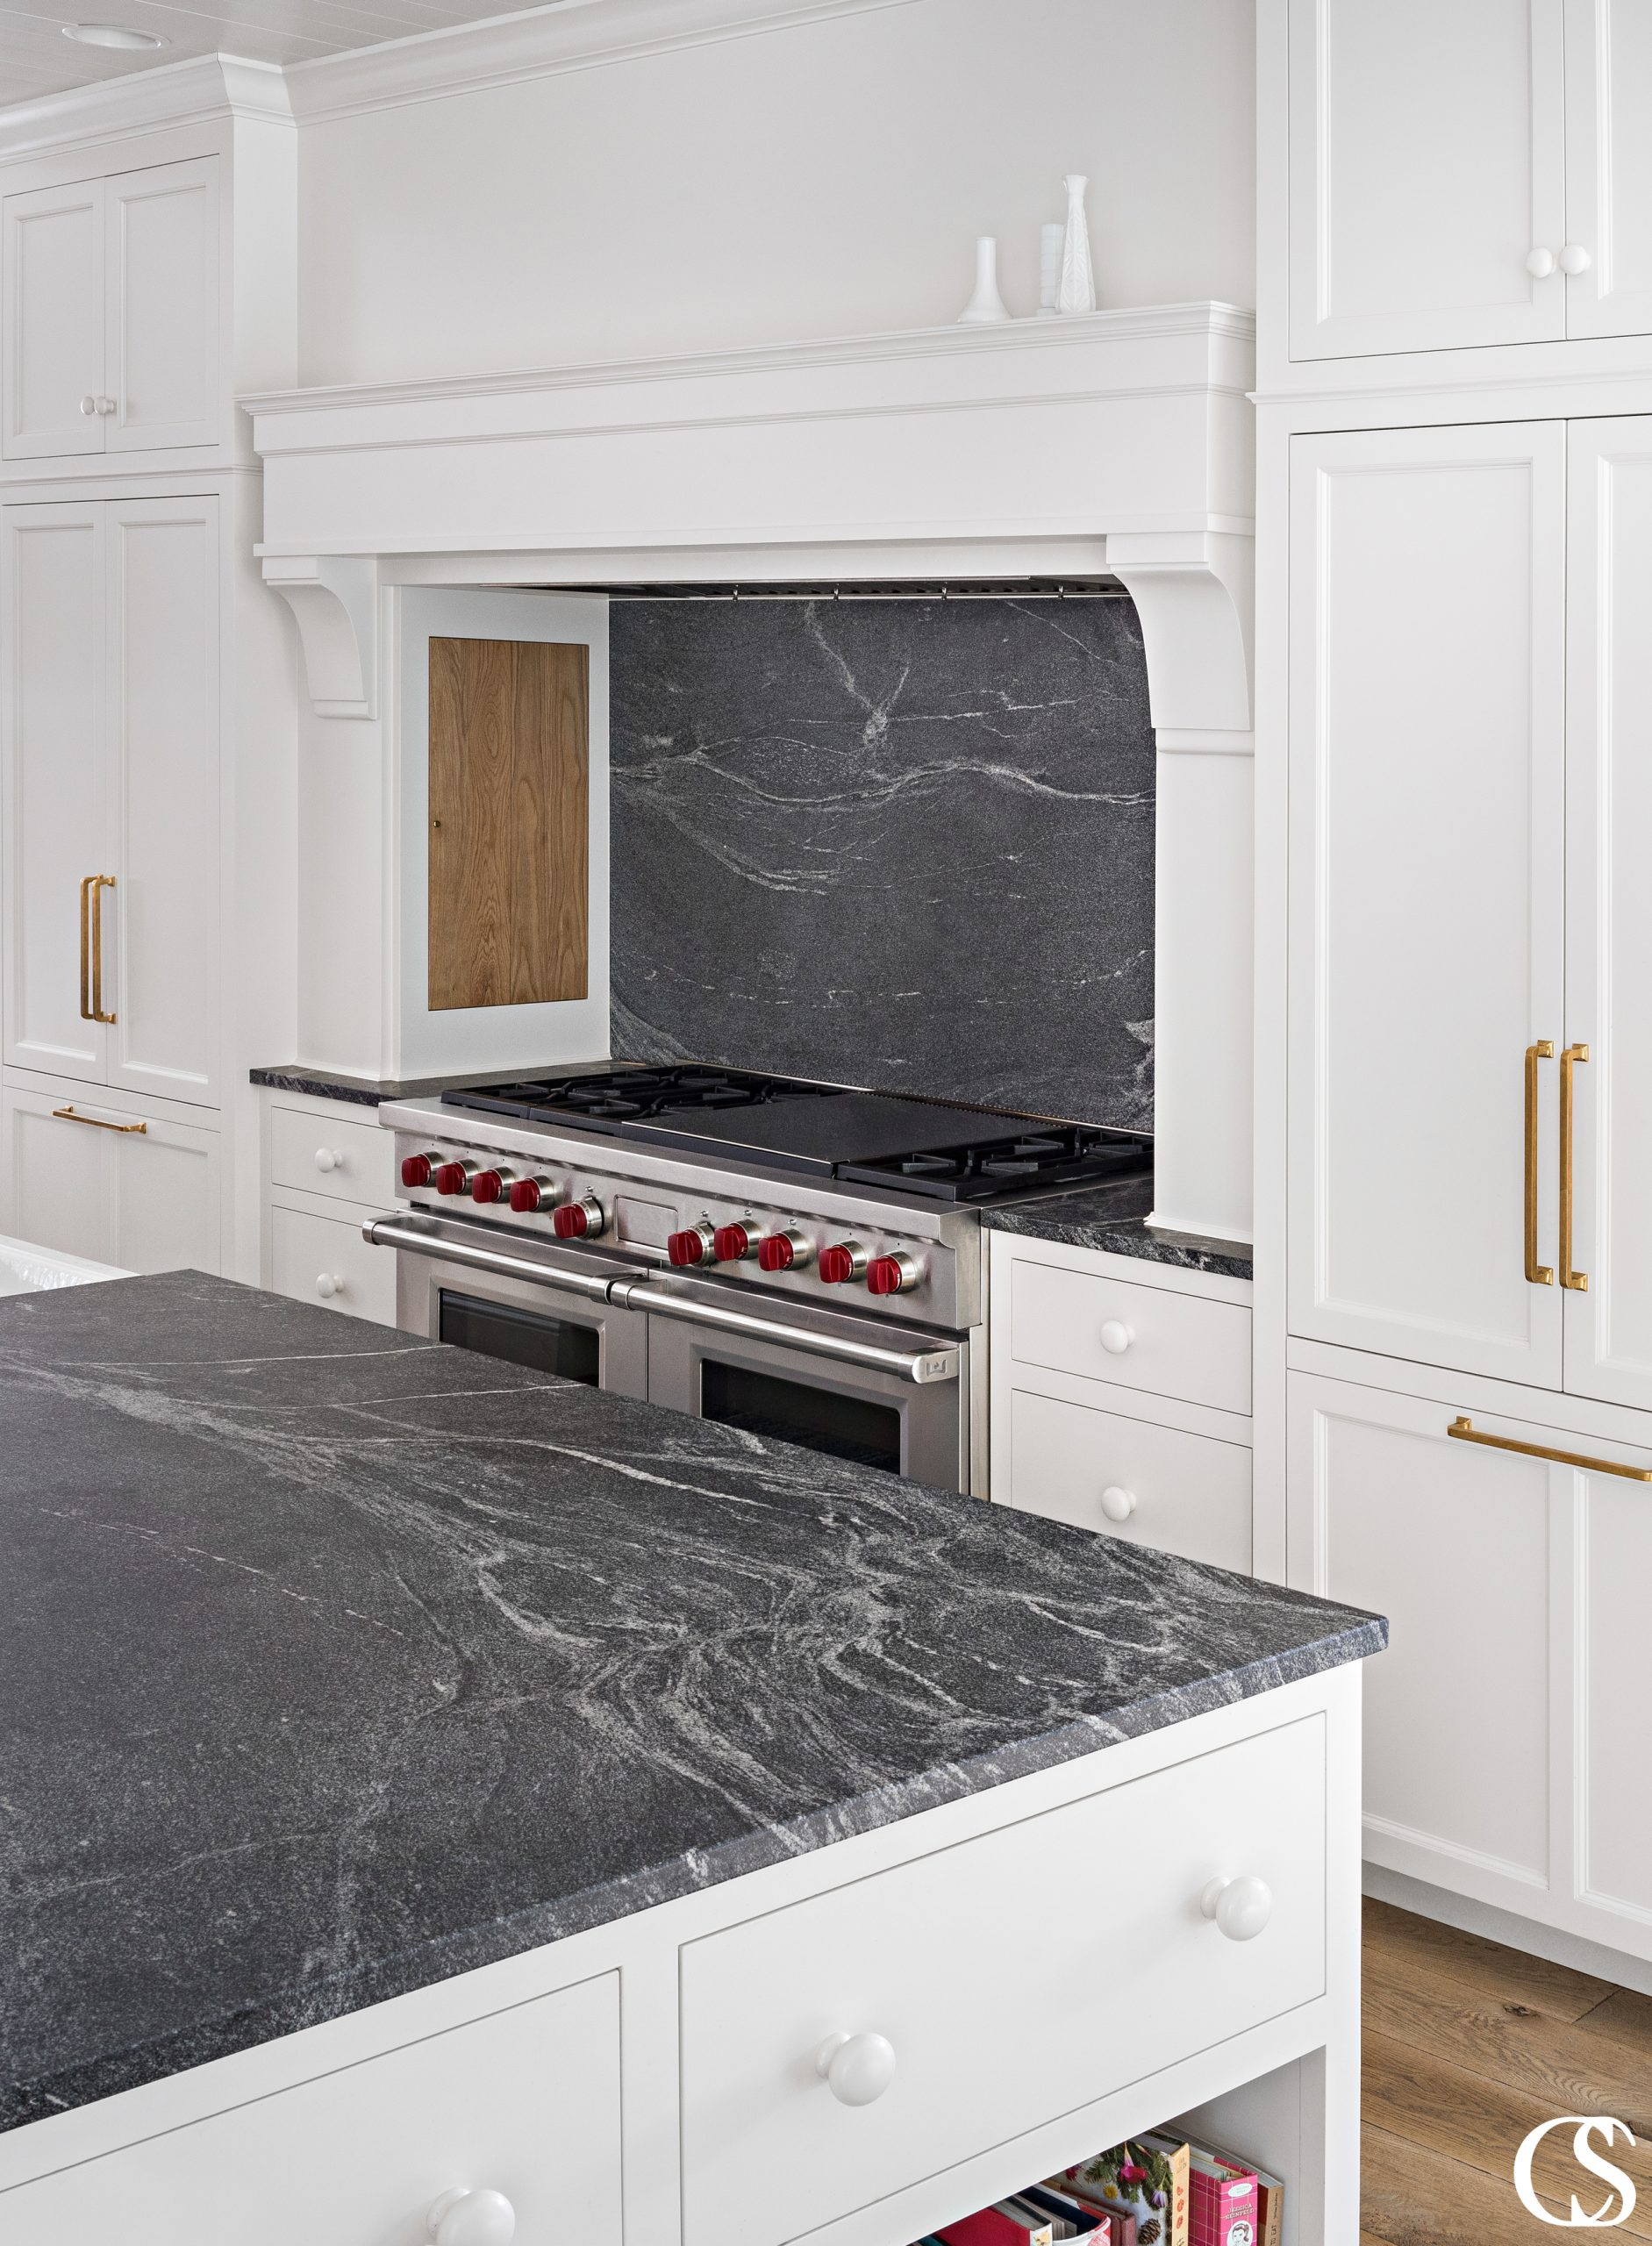 Some of the best custom cabinet design in the kitchen comes complete with a hidden spice cupboard near the stove for easy access during cooking and beautiful kitchen storage.